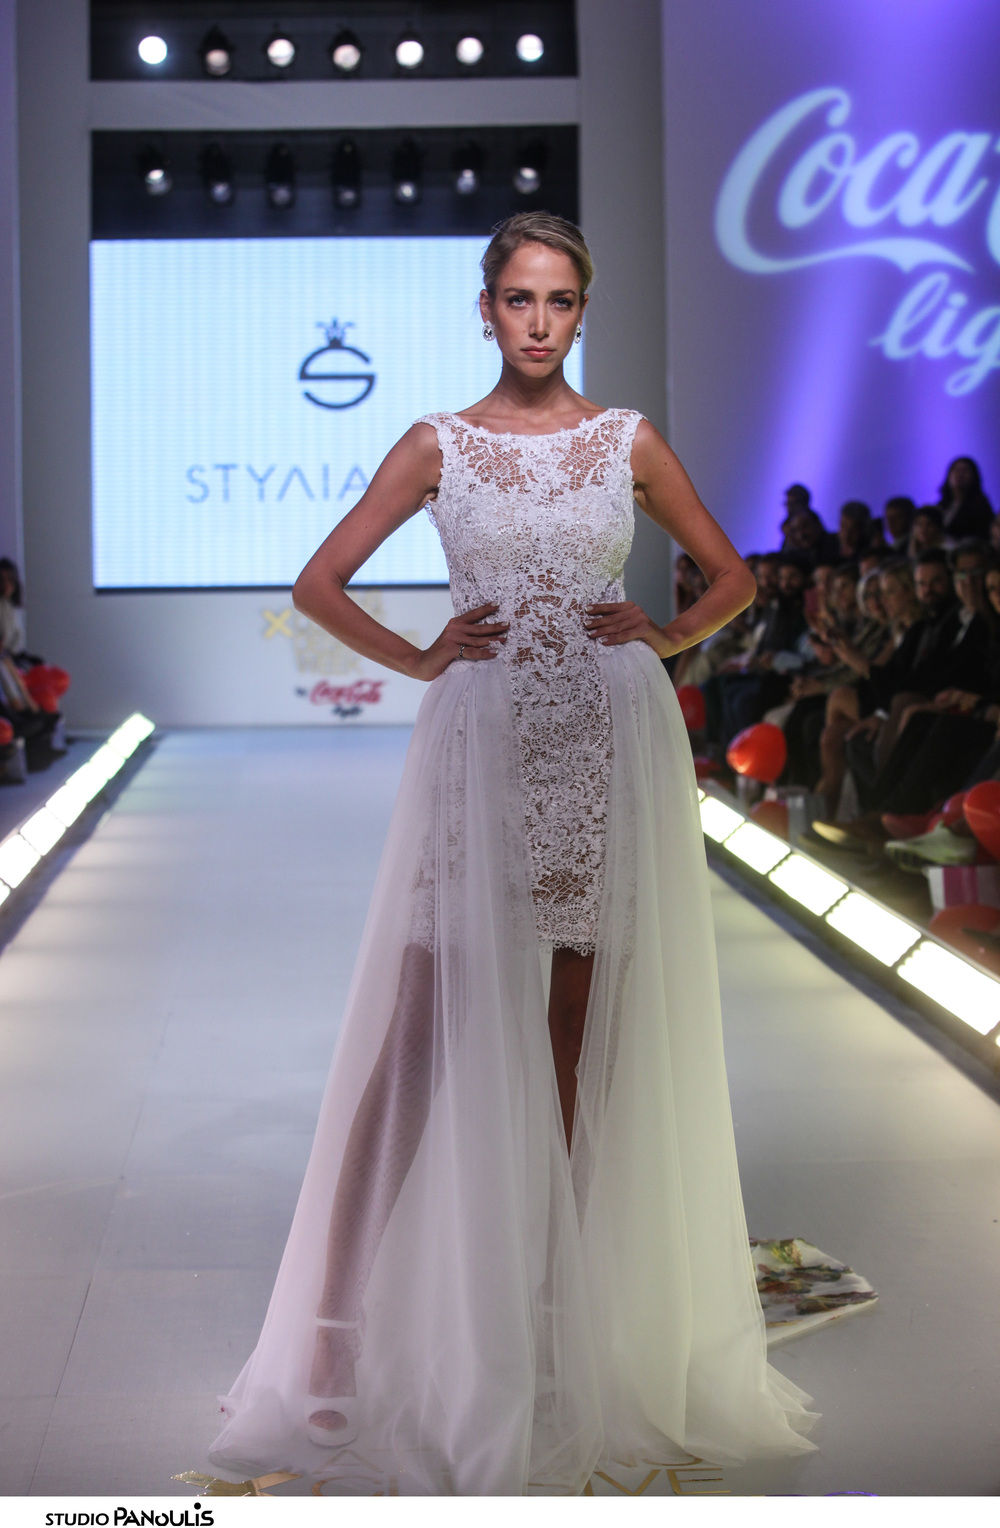 STYLIANOS - special happening/ Catwalk